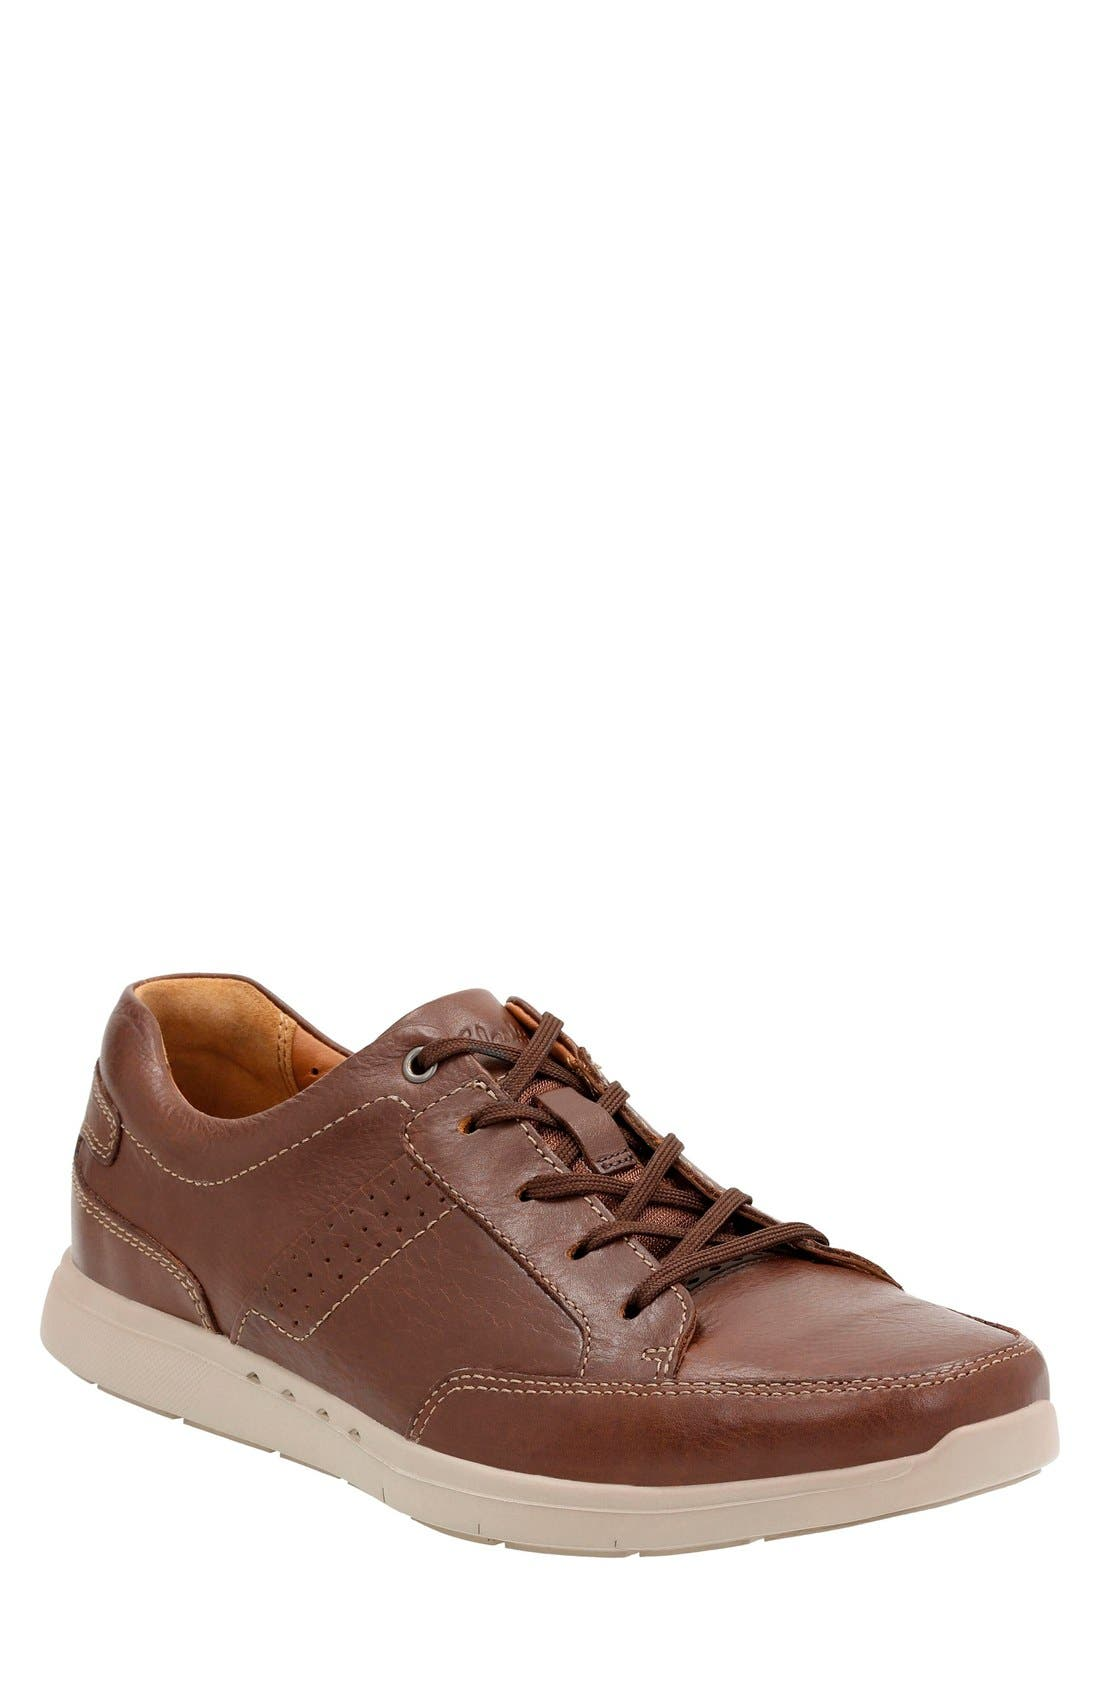 'Unstructured - Lomac' Leather Sneaker,                             Main thumbnail 1, color,                             Tan